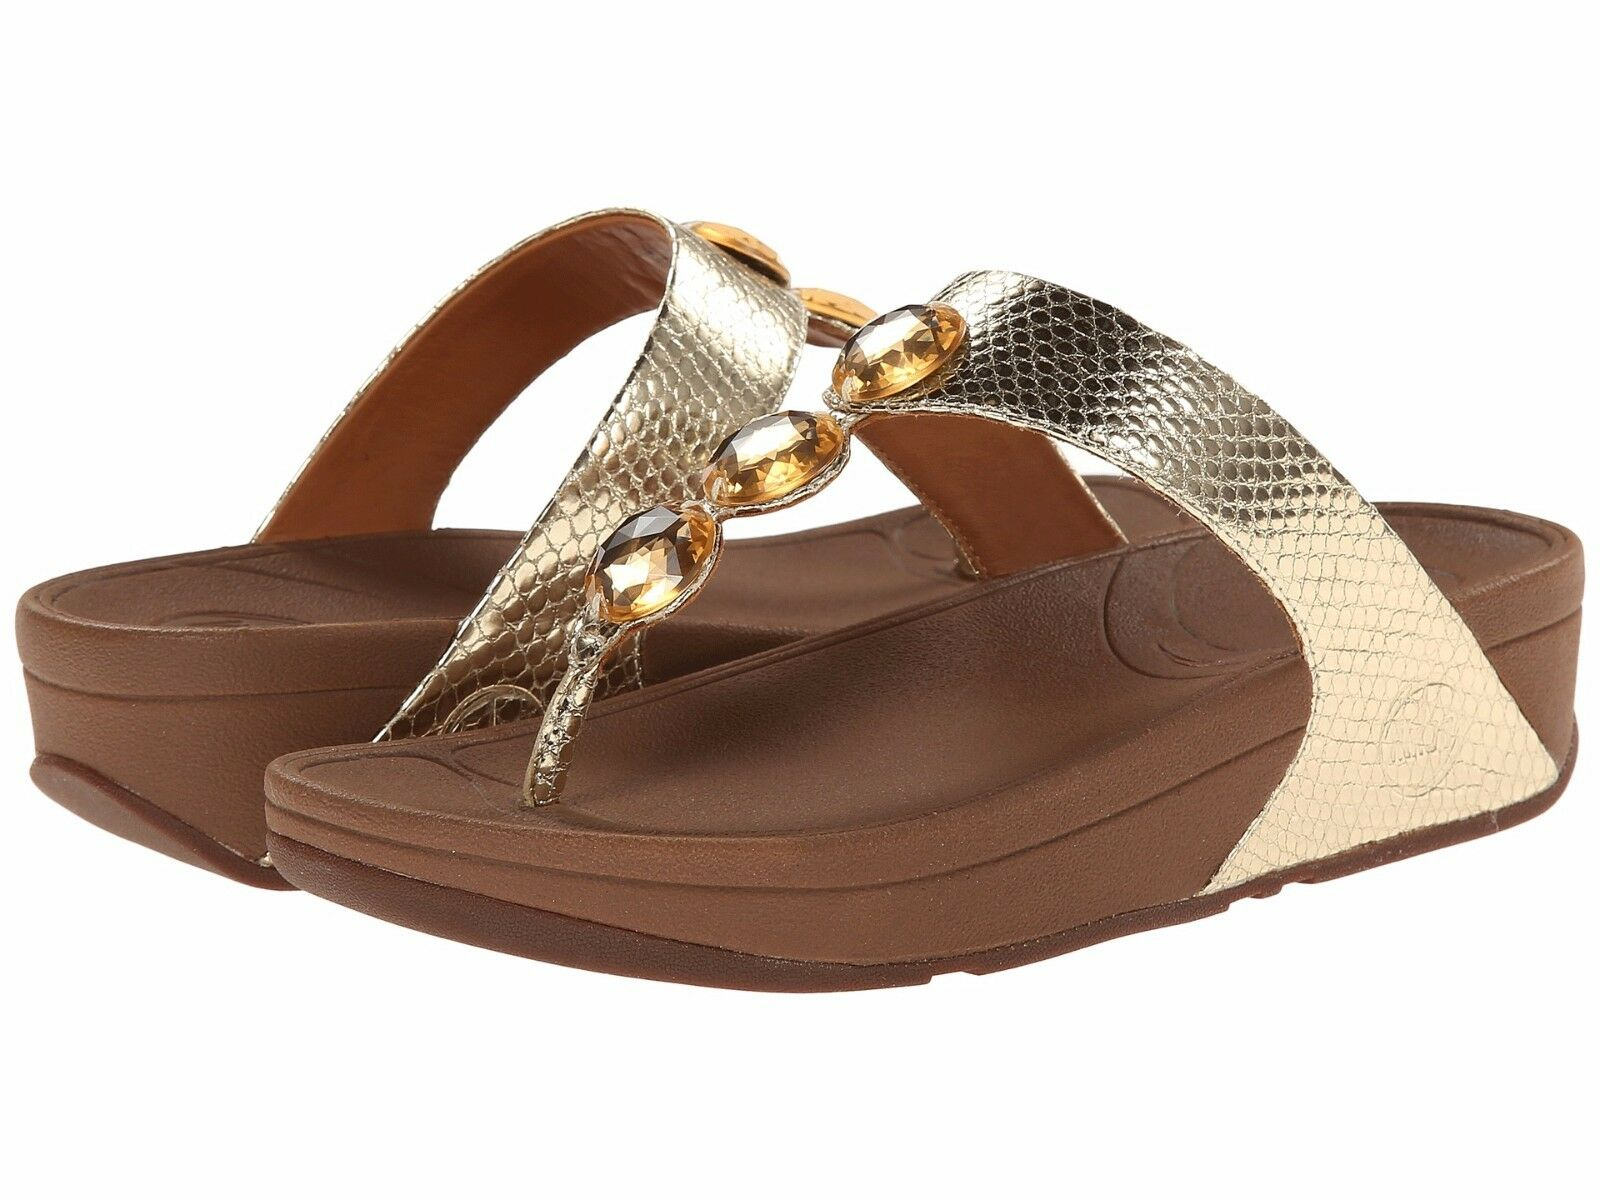 NEW FITFLOP SANDALS WOMEN Sz8US PETRA JEWELED SANDALS FITFLOP LEATHER PALE GOLD 023e5a